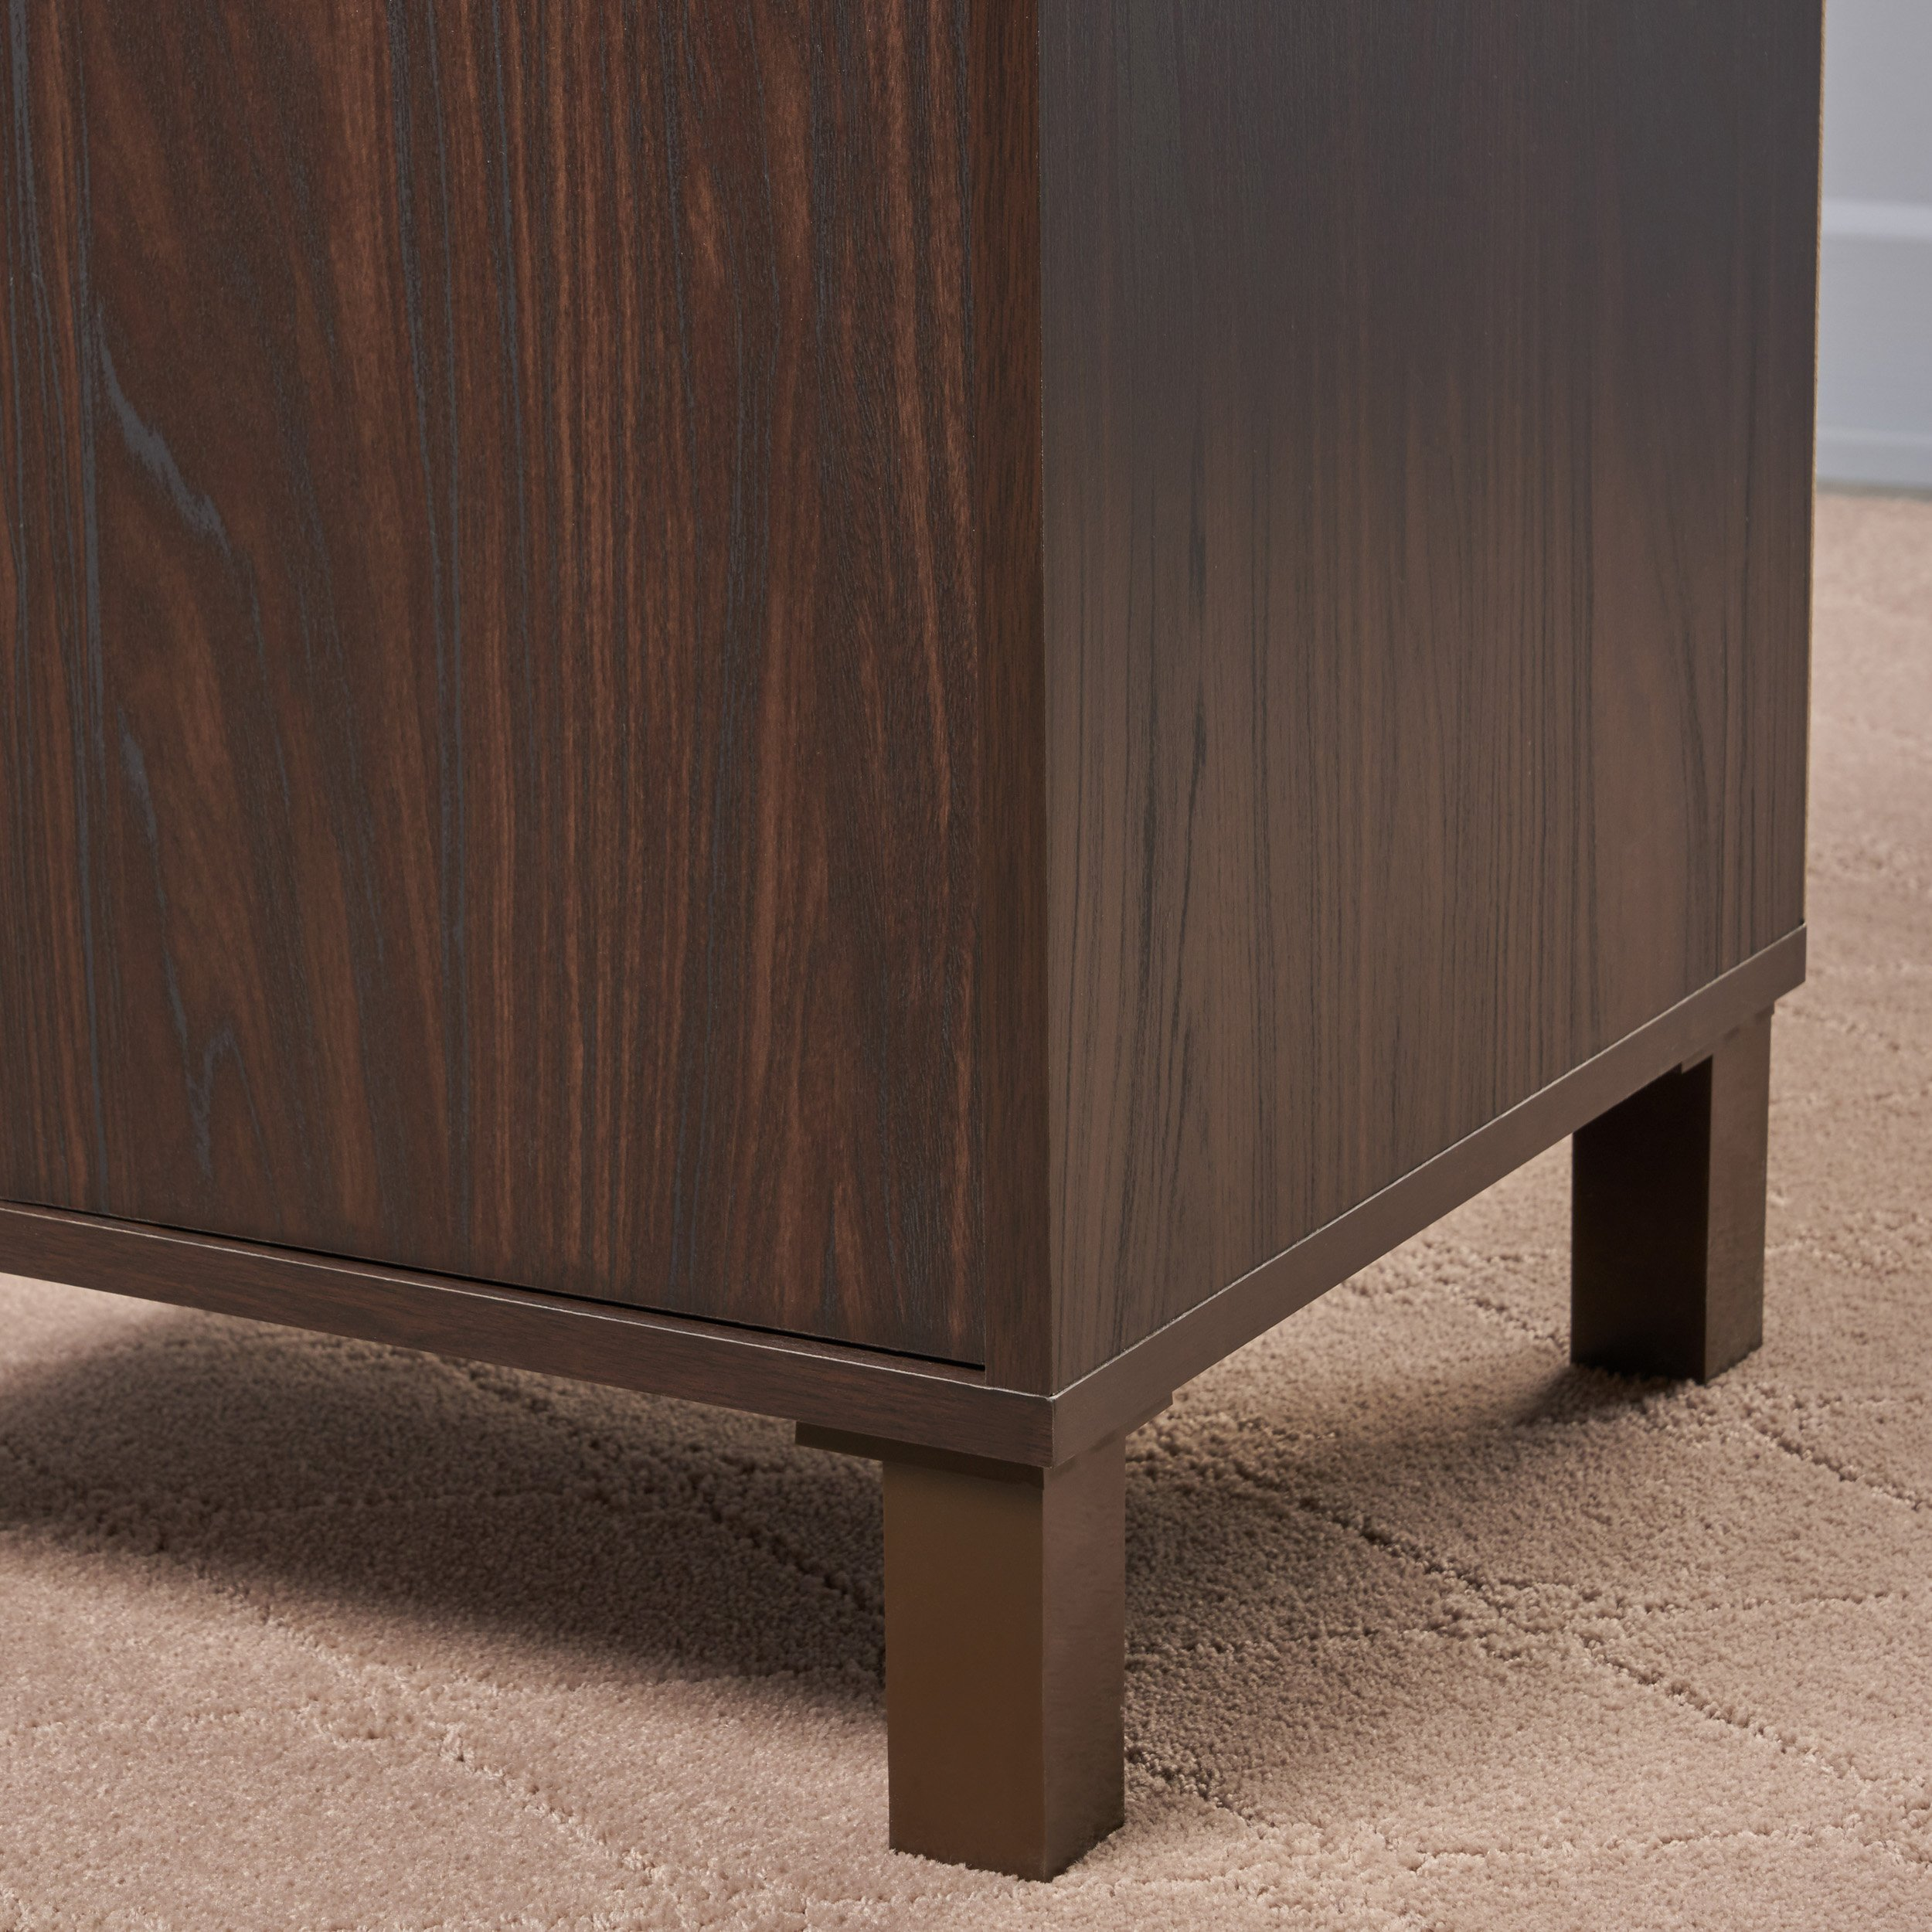 Christopher Knight Home 303655 Linnea Wood Cabinet, Walnut/Sanremo Oak/Brown by Christopher Knight Home (Image #3)